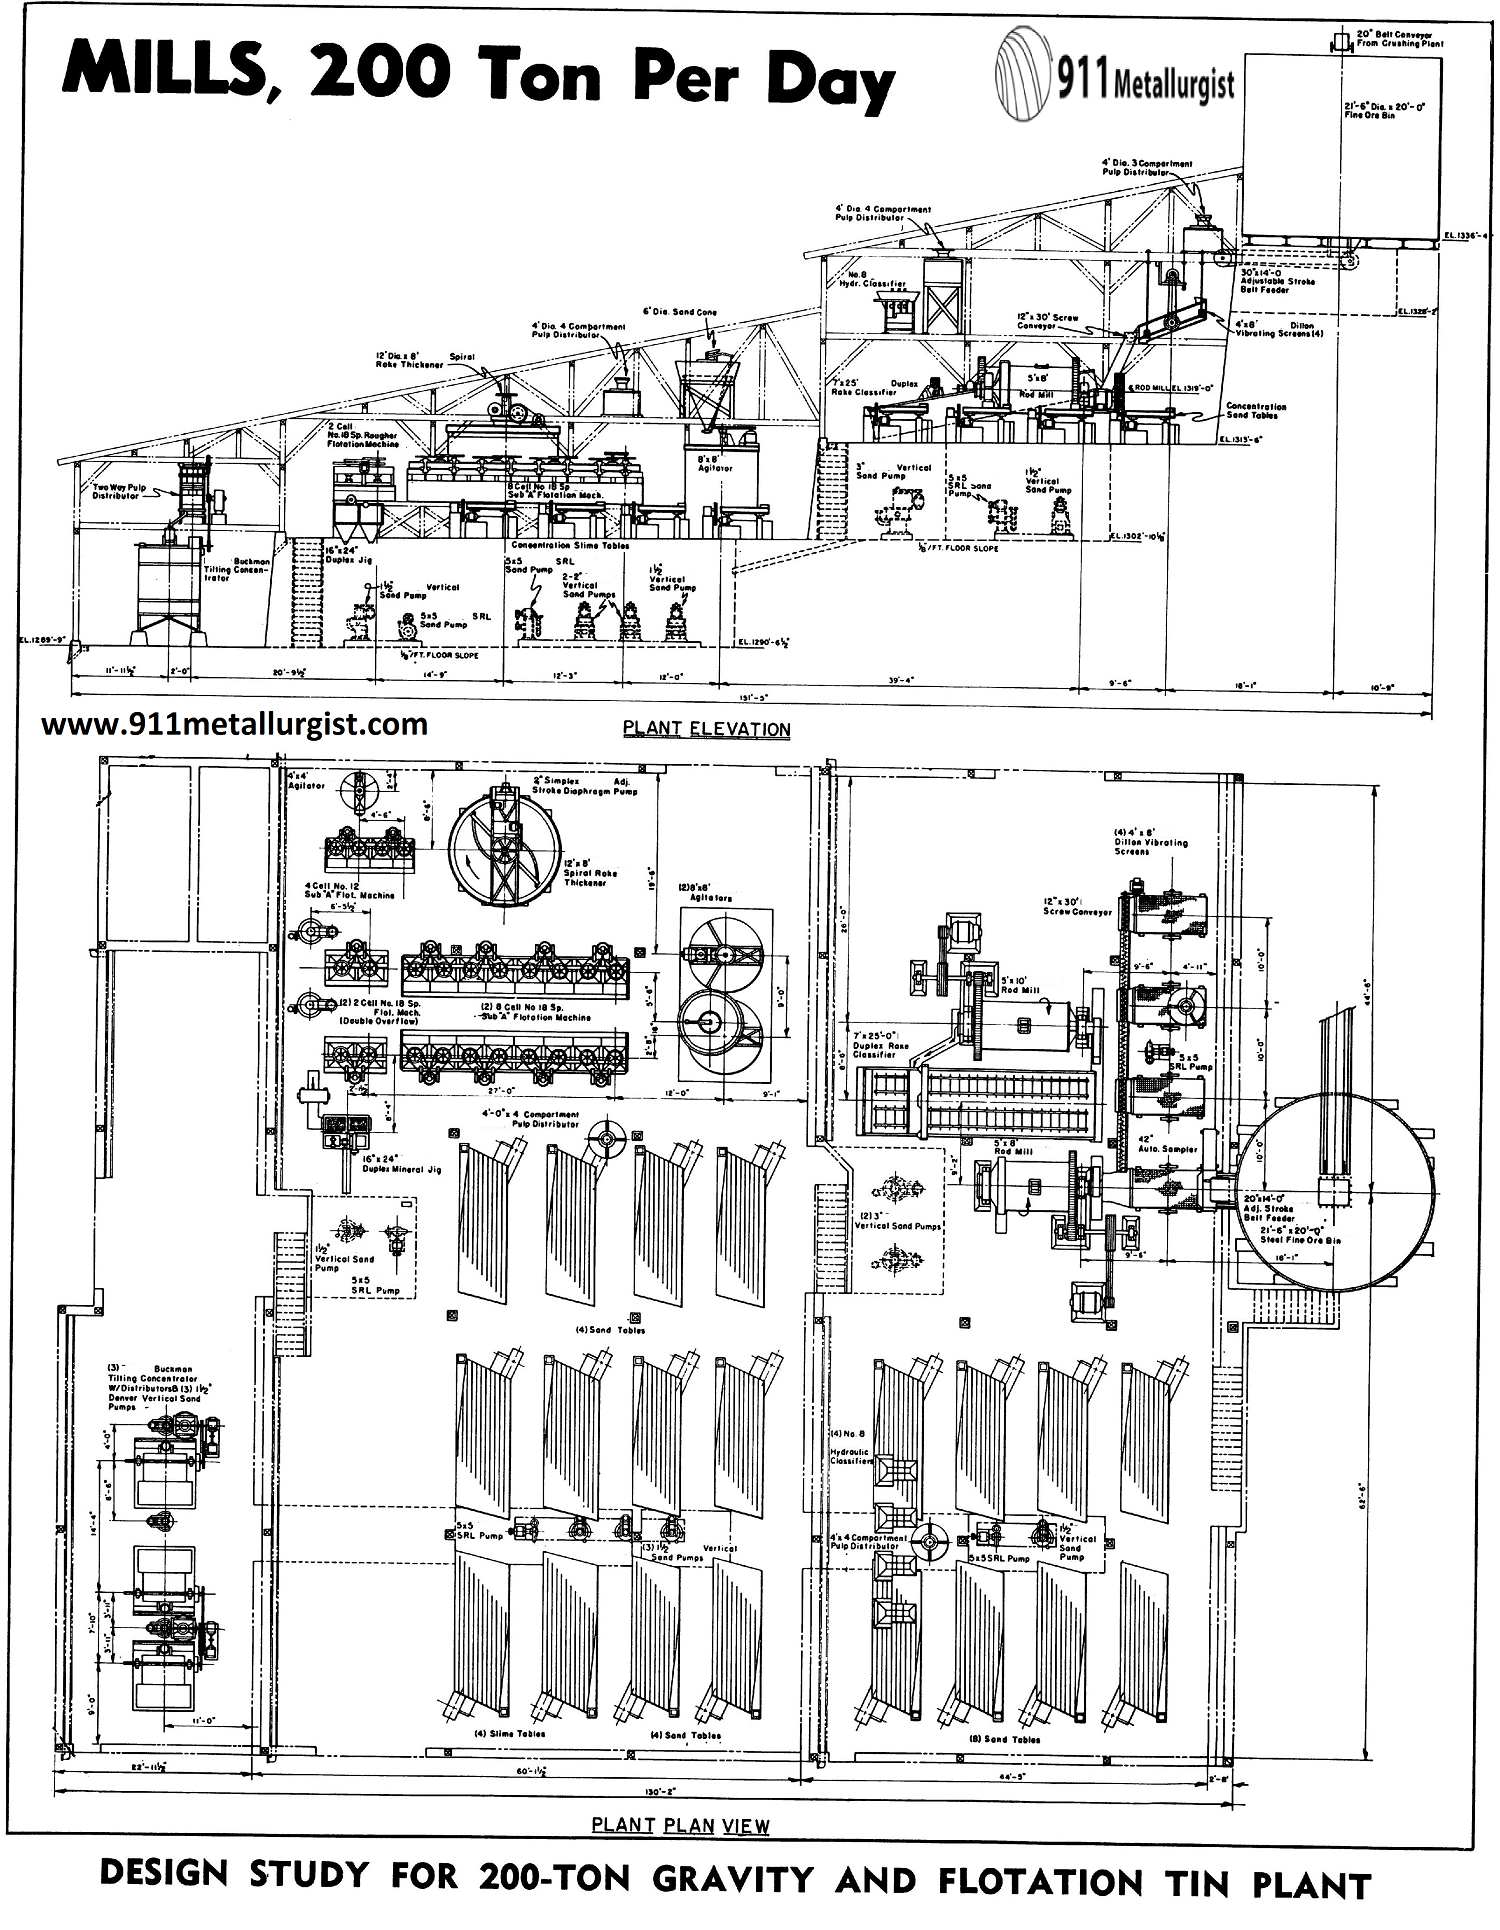 Design Study for 200-Ton Gravity and Flotation Tin Plant